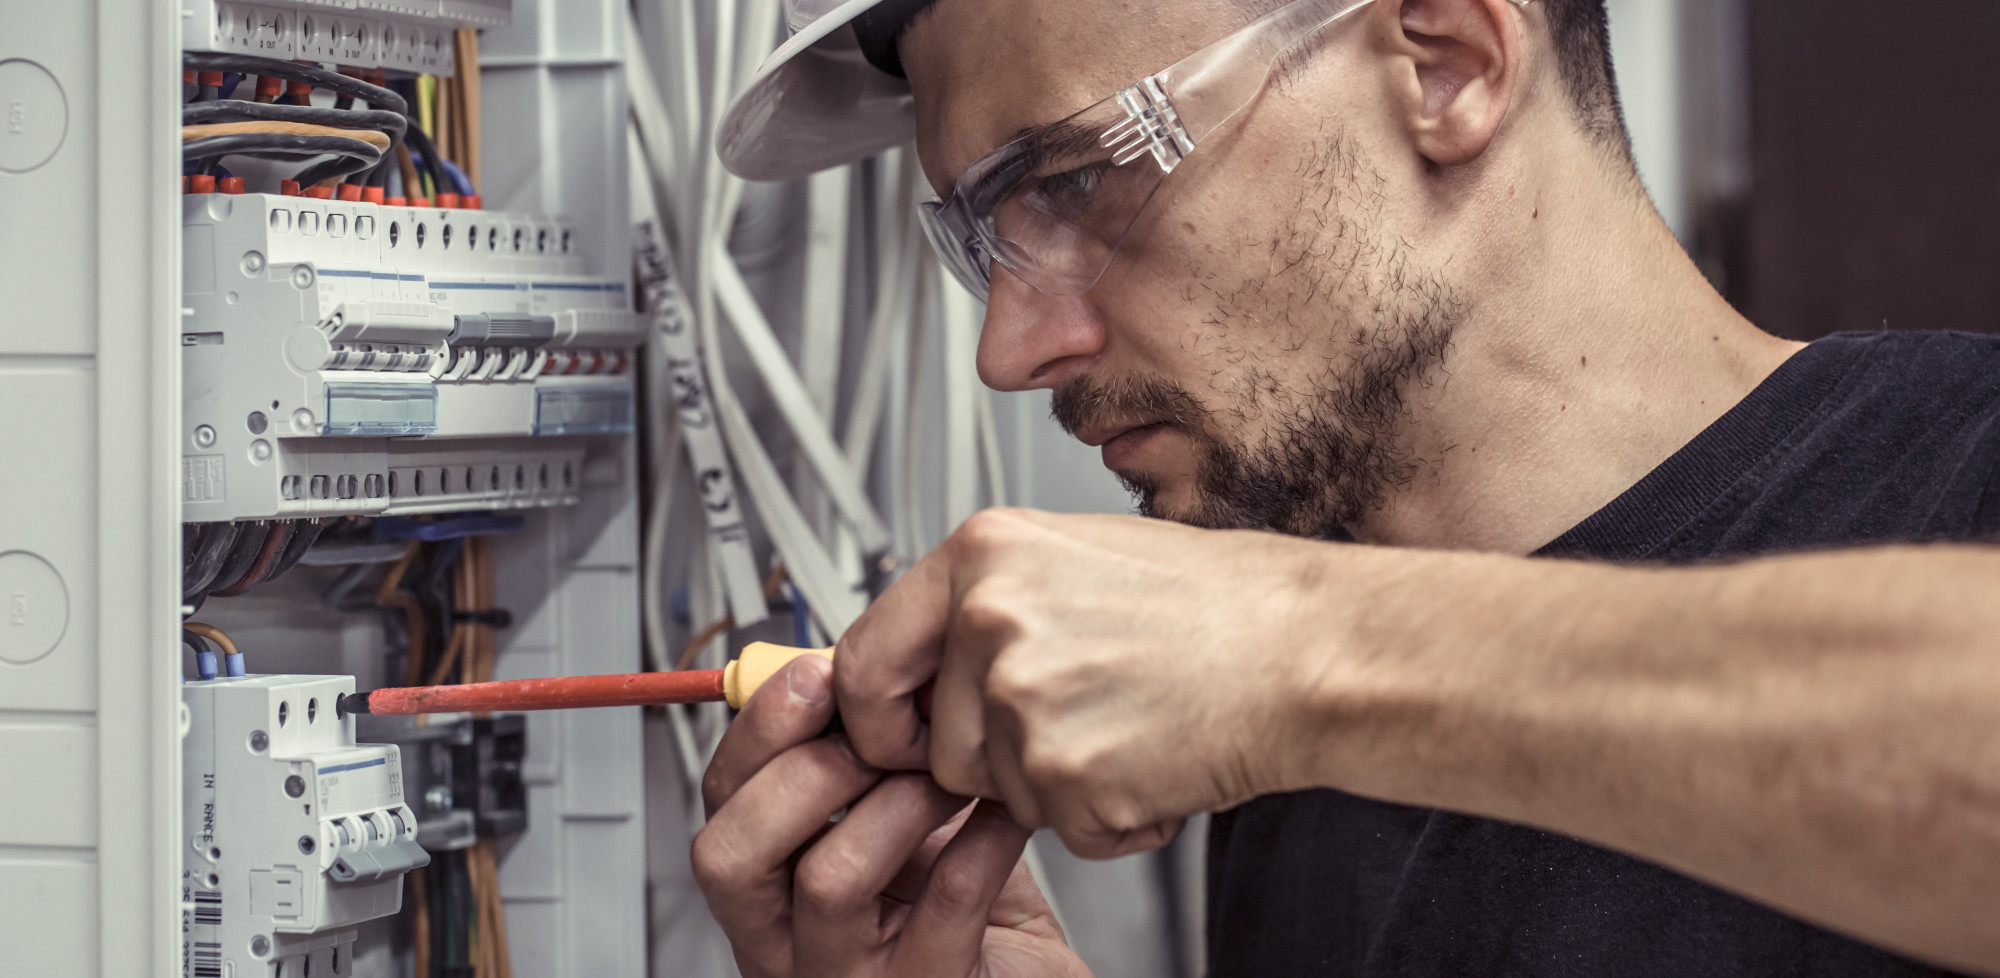 5 Questions to Ask Before Hiring an Electrician